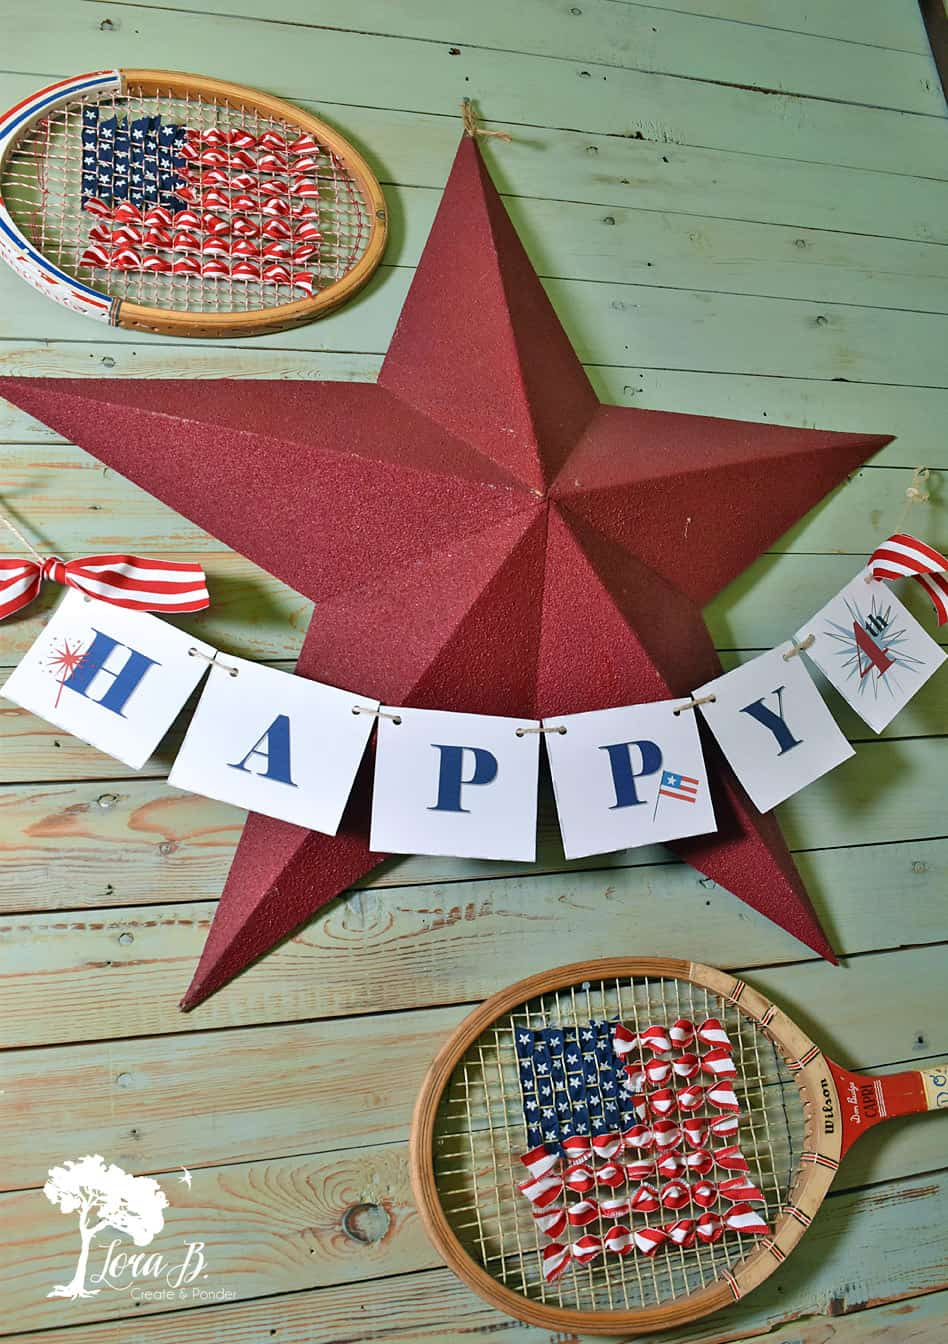 Tennis Racket Upcycle 4th of July decor